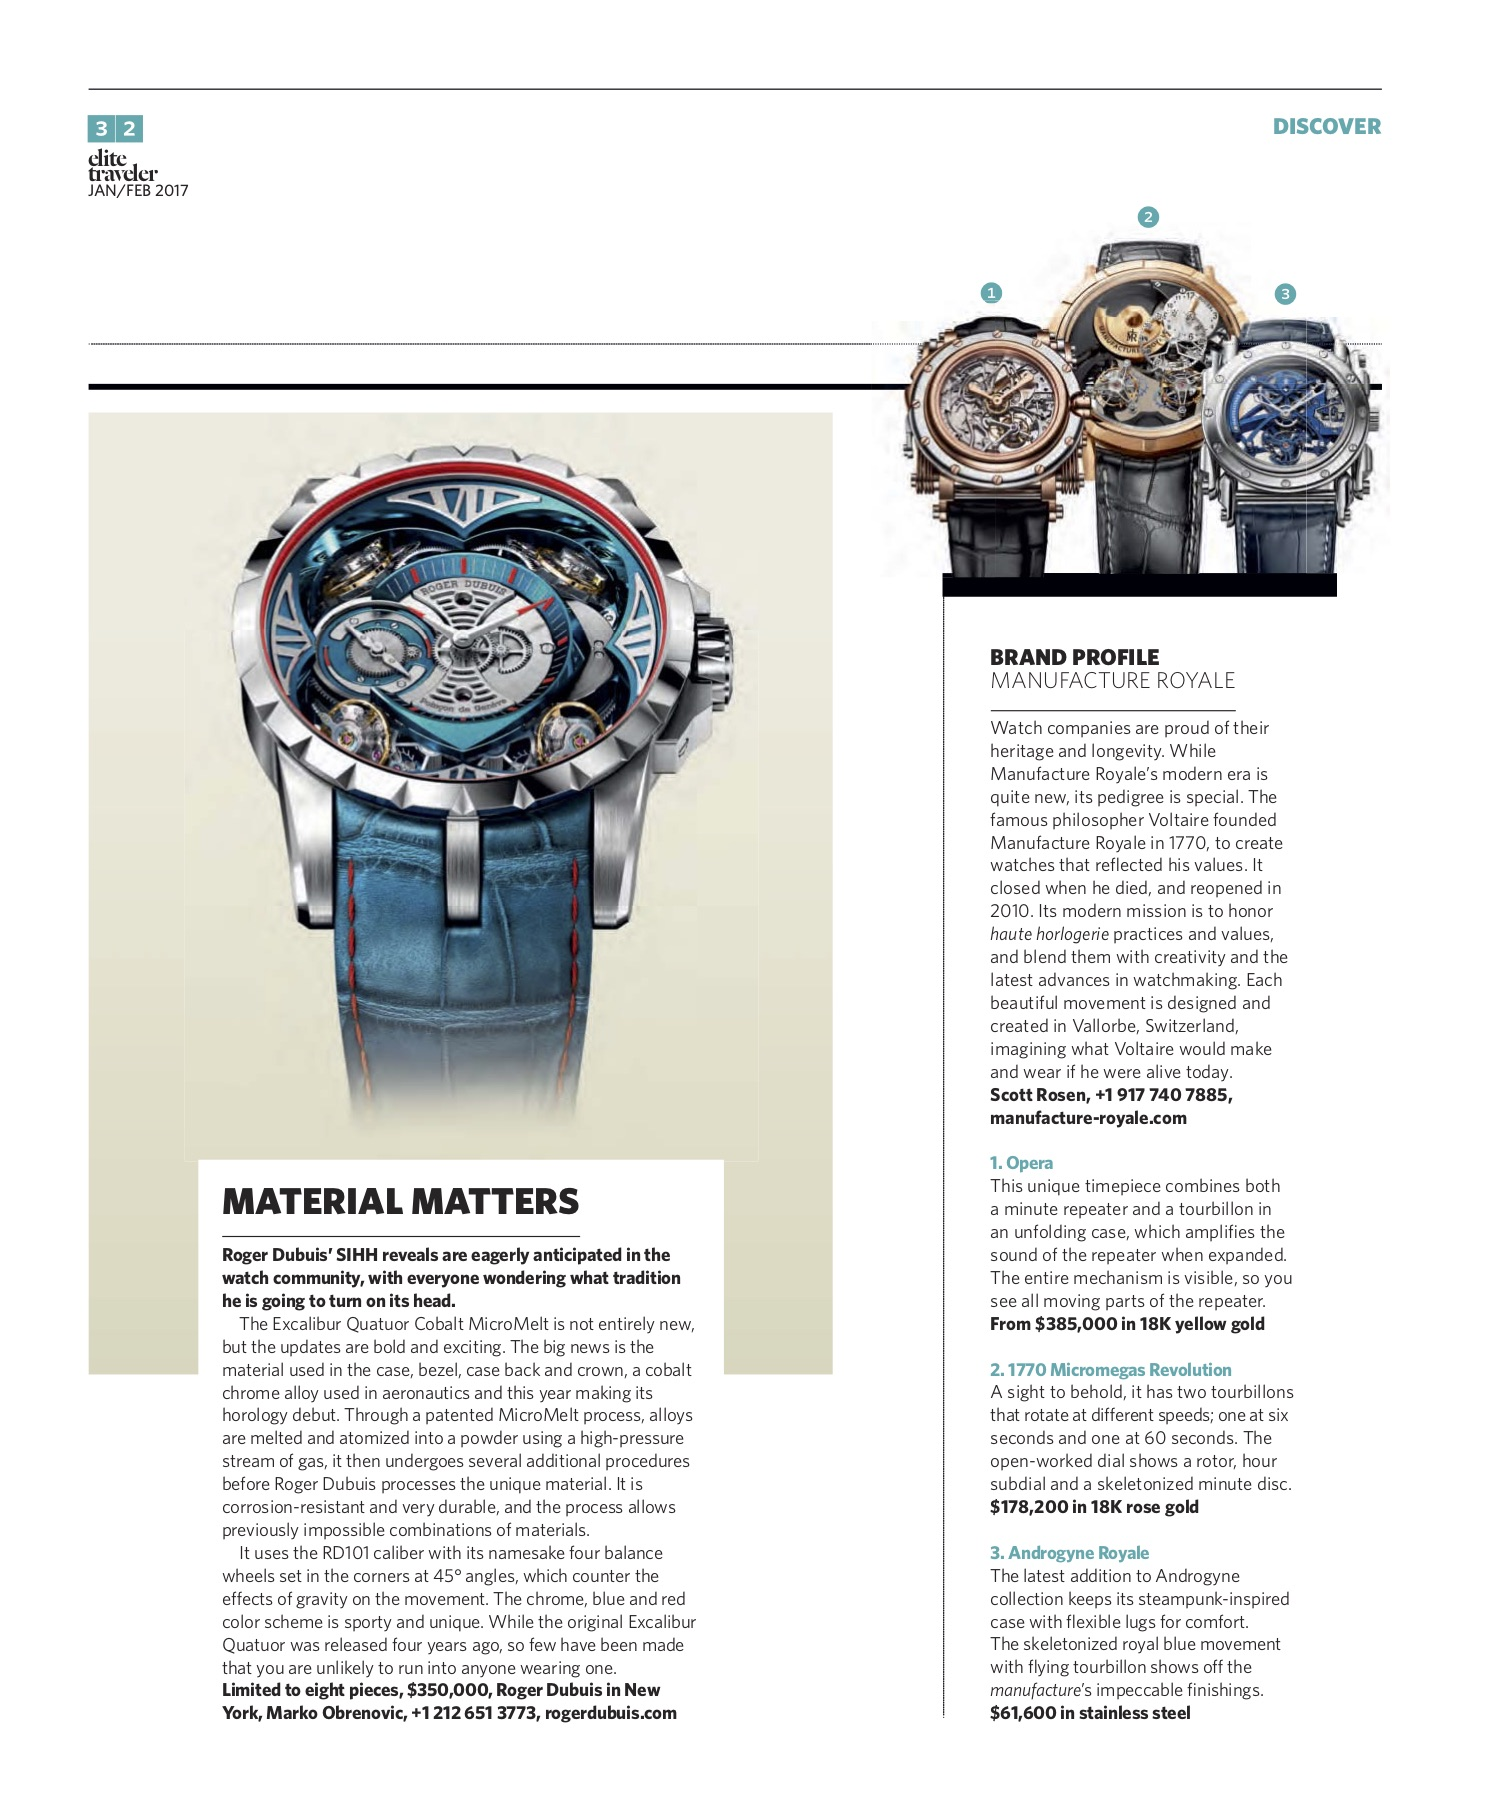 January/February 2017 | Roger Dubuis Excalibur Quatuor Cobalt MicroMelt, Manufacture Royale Profile